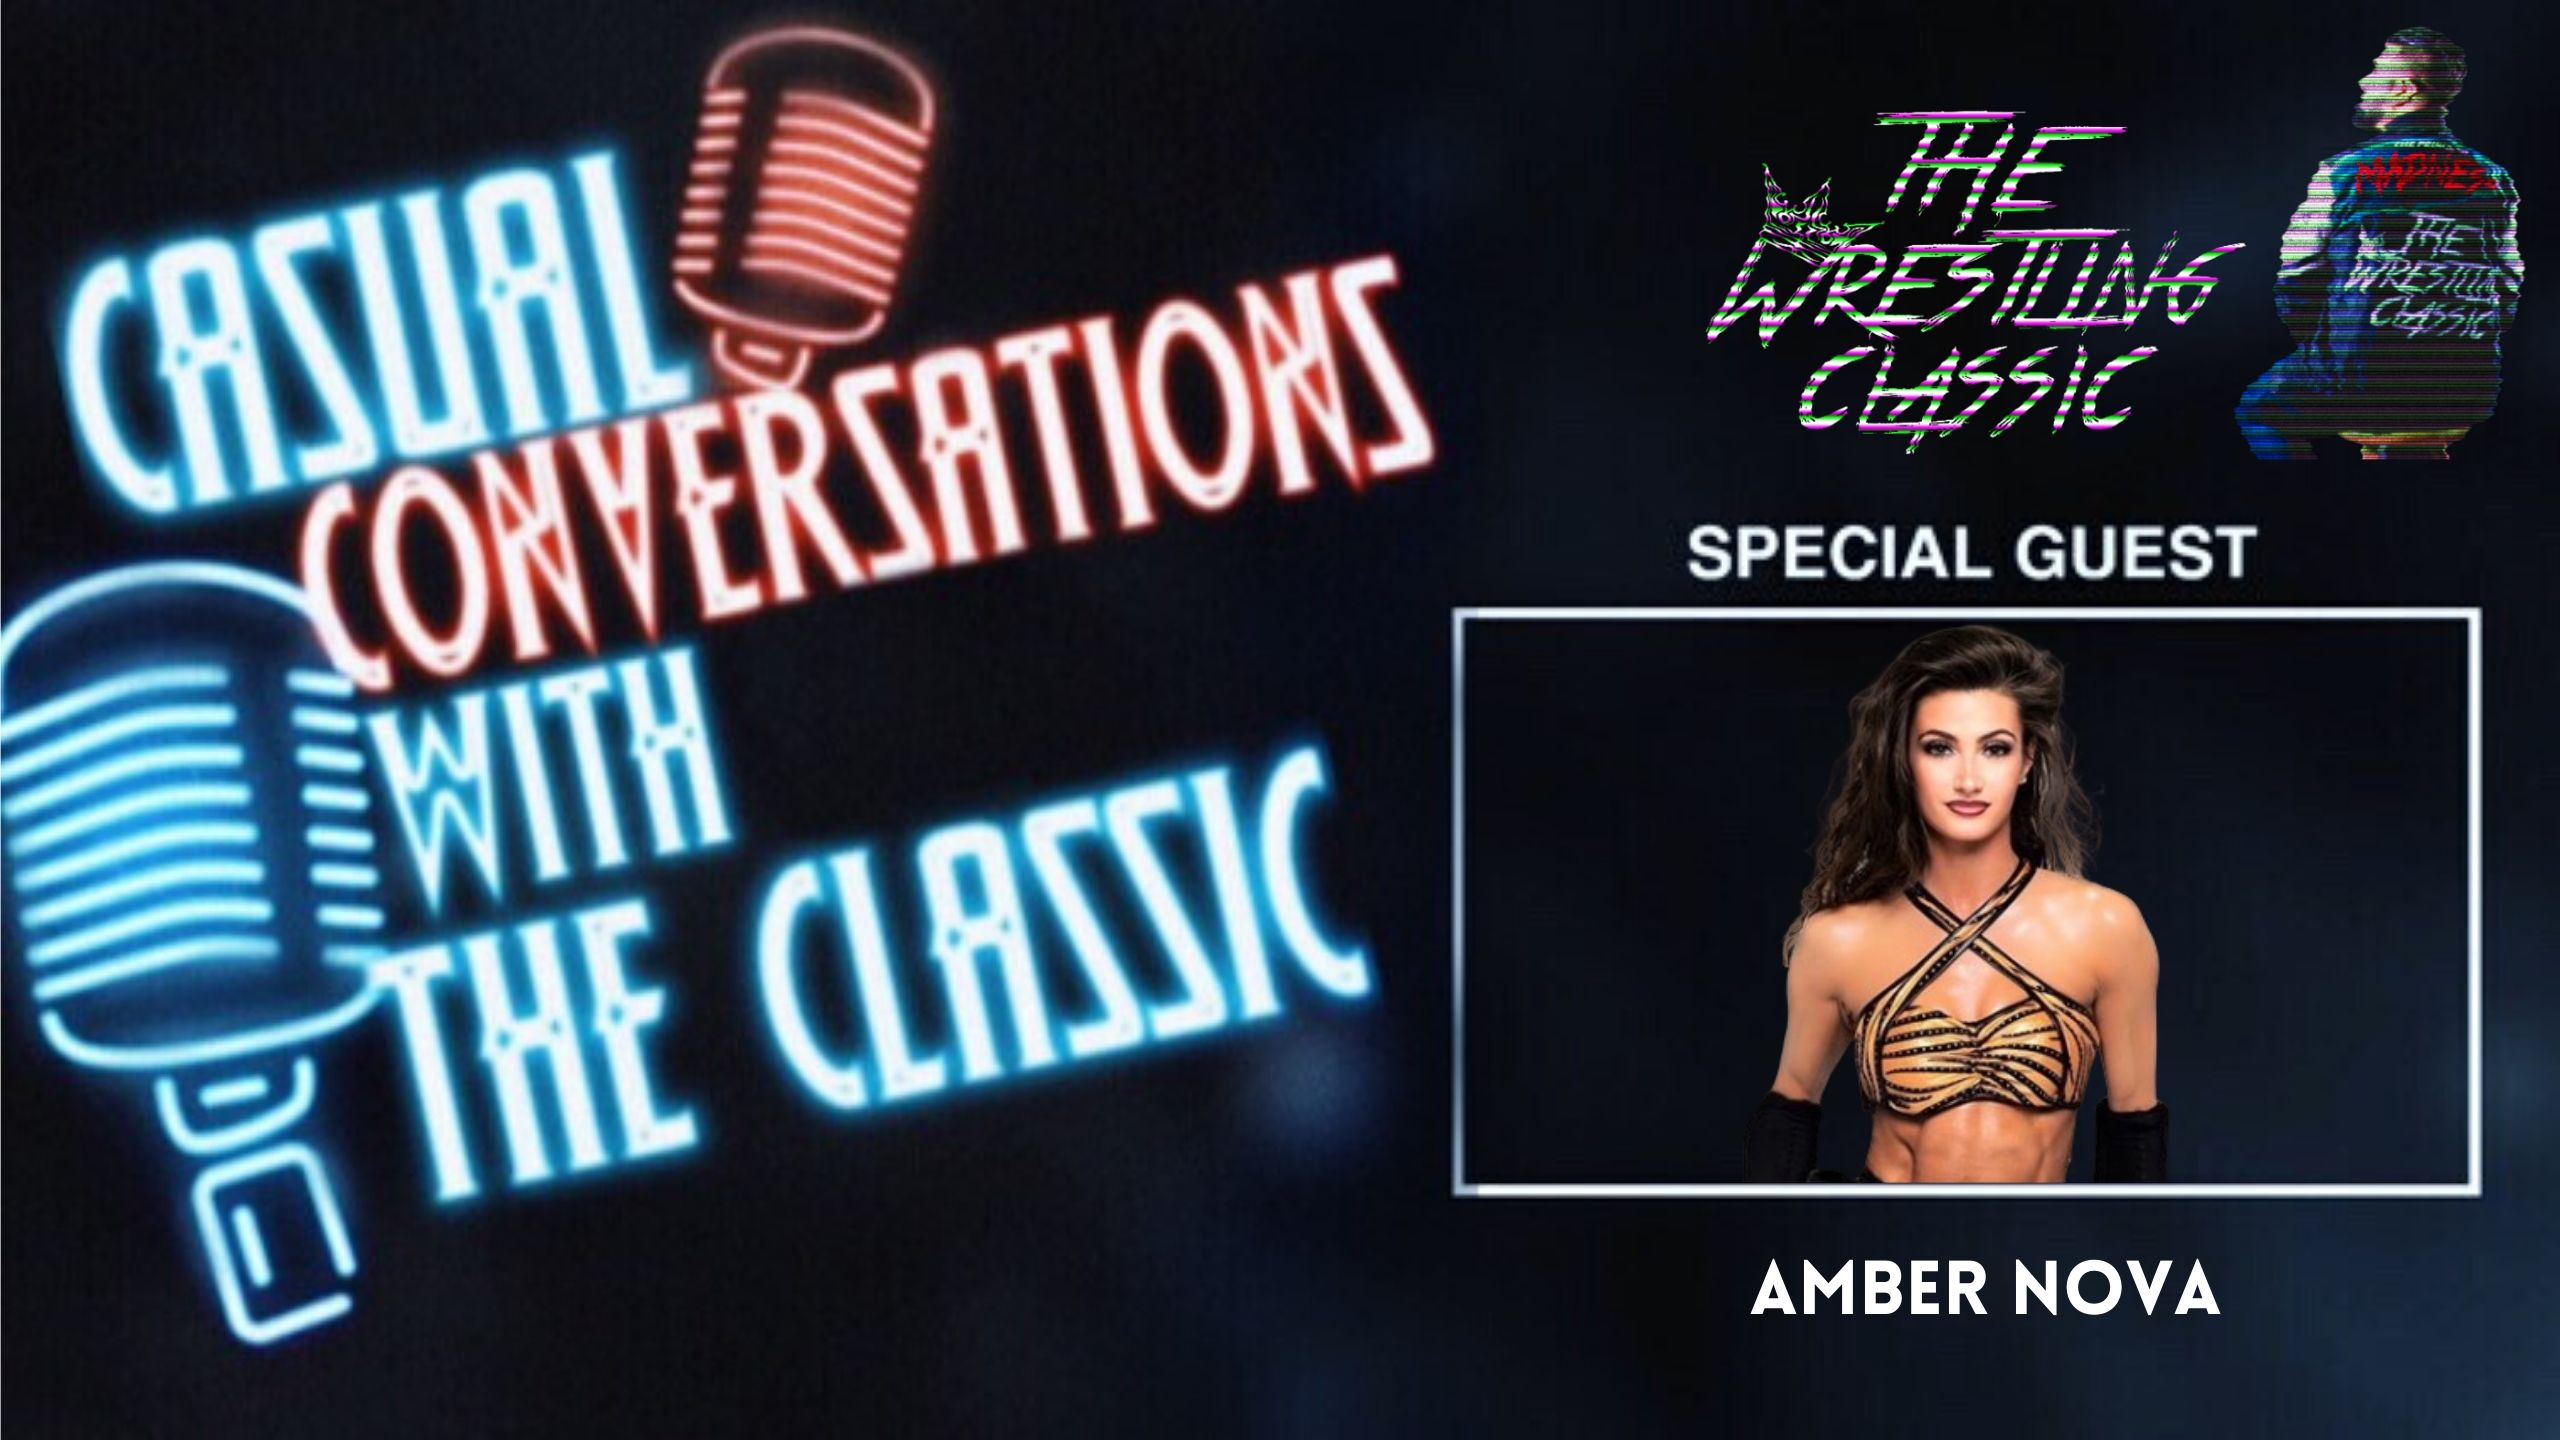 Casual Conversations with The Classic – Amber Nova